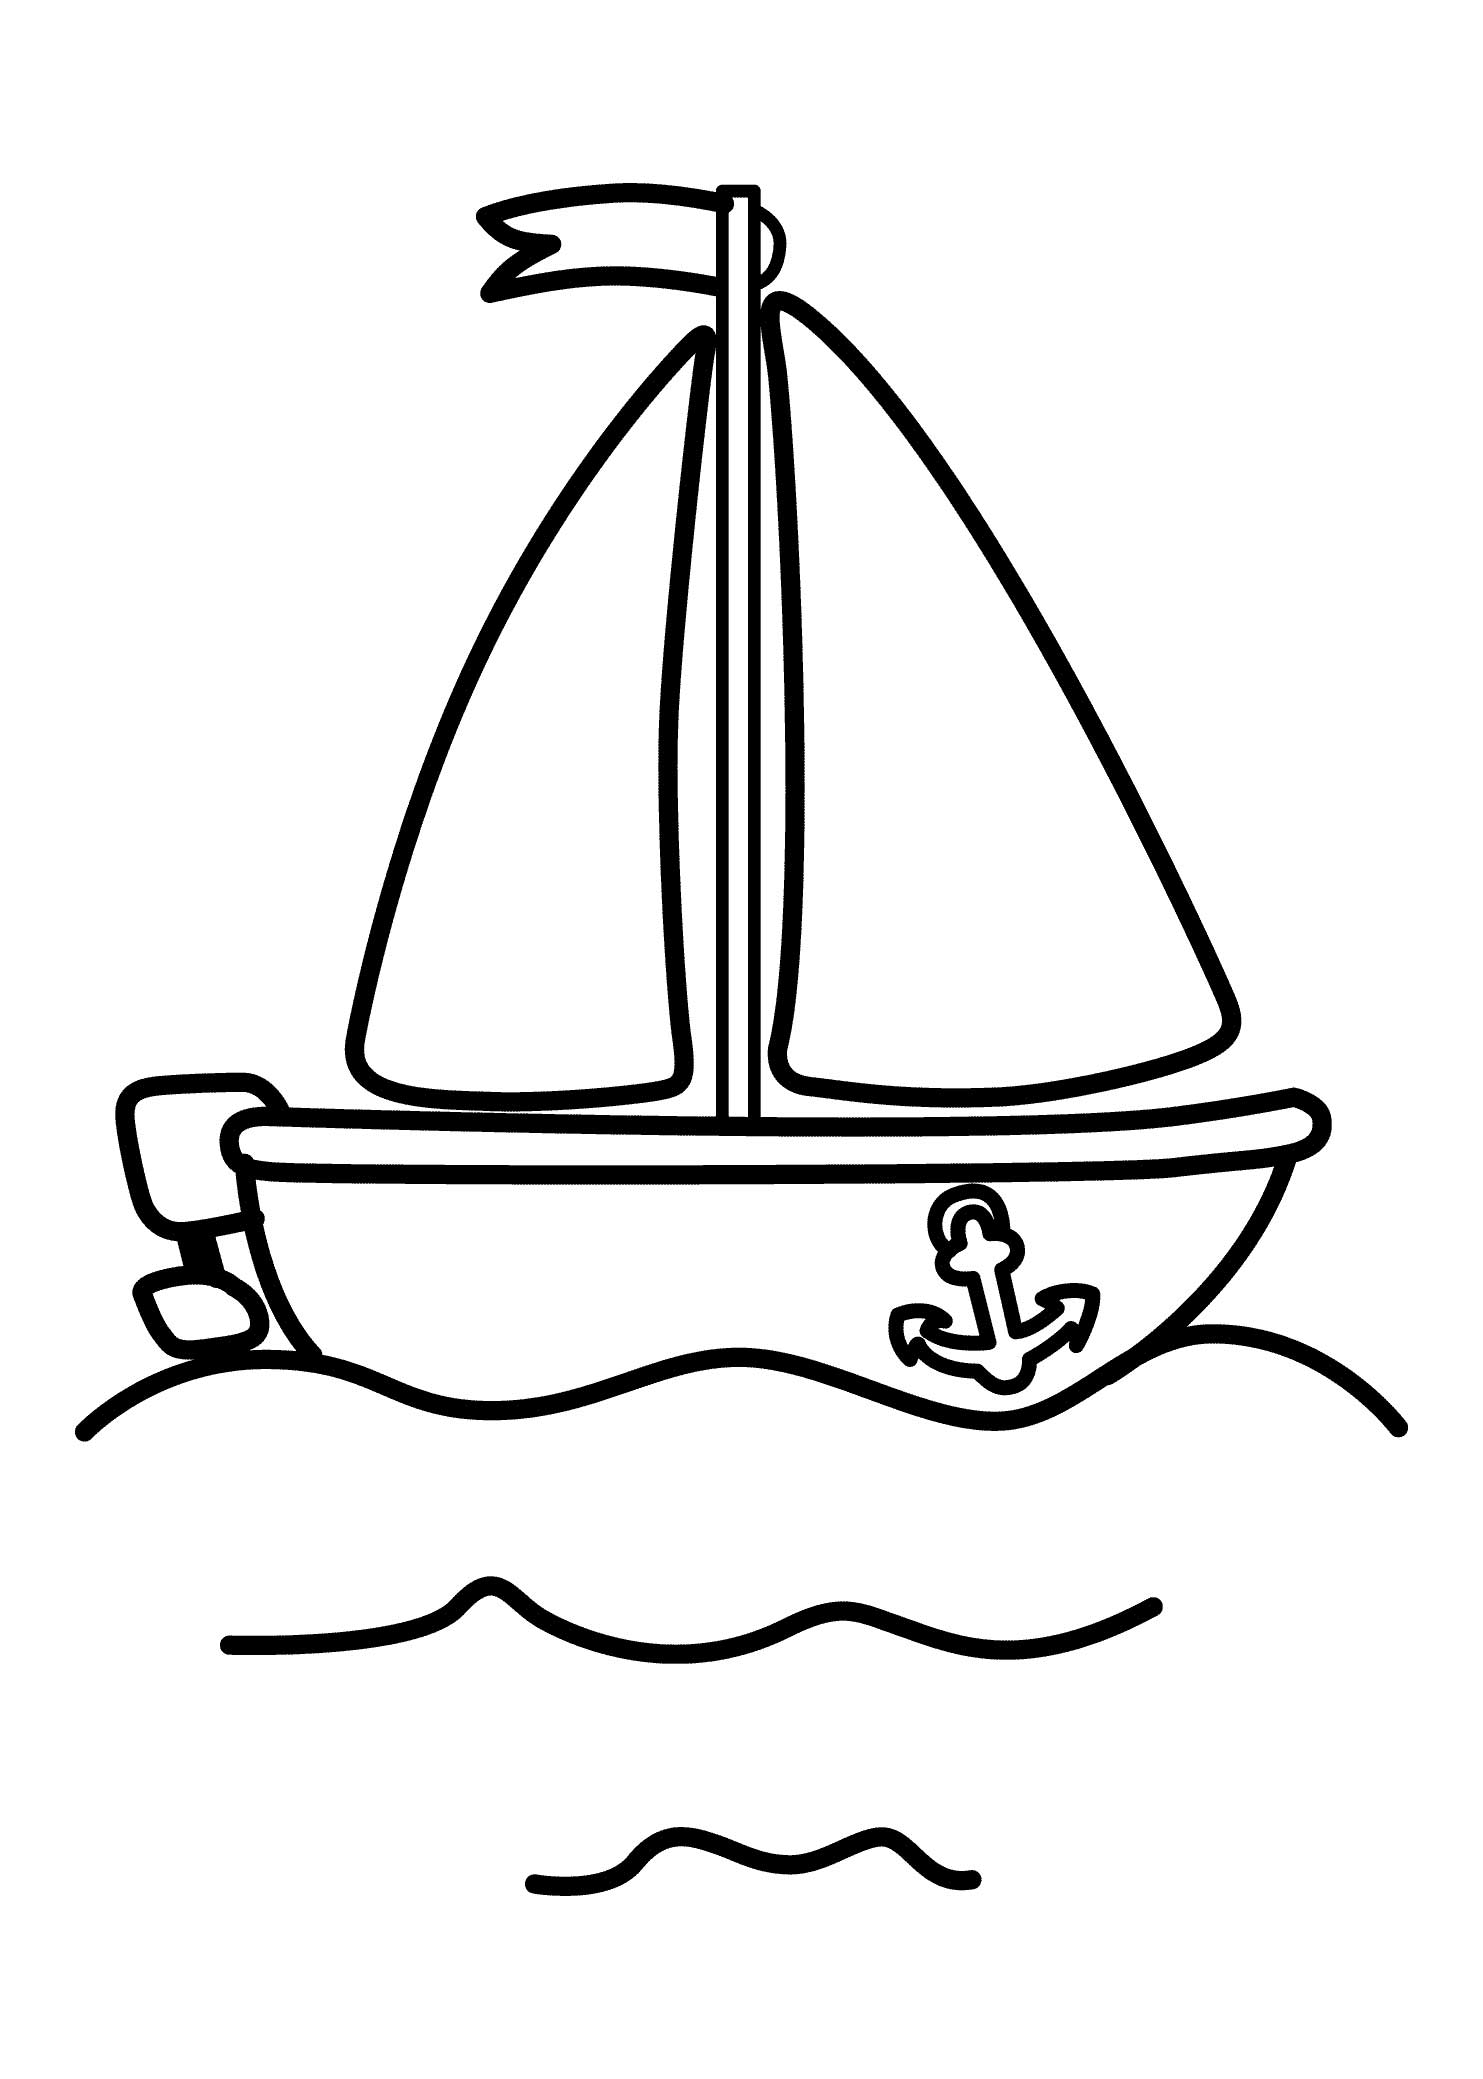 21 Printable Boat Coloring Pages Free Download